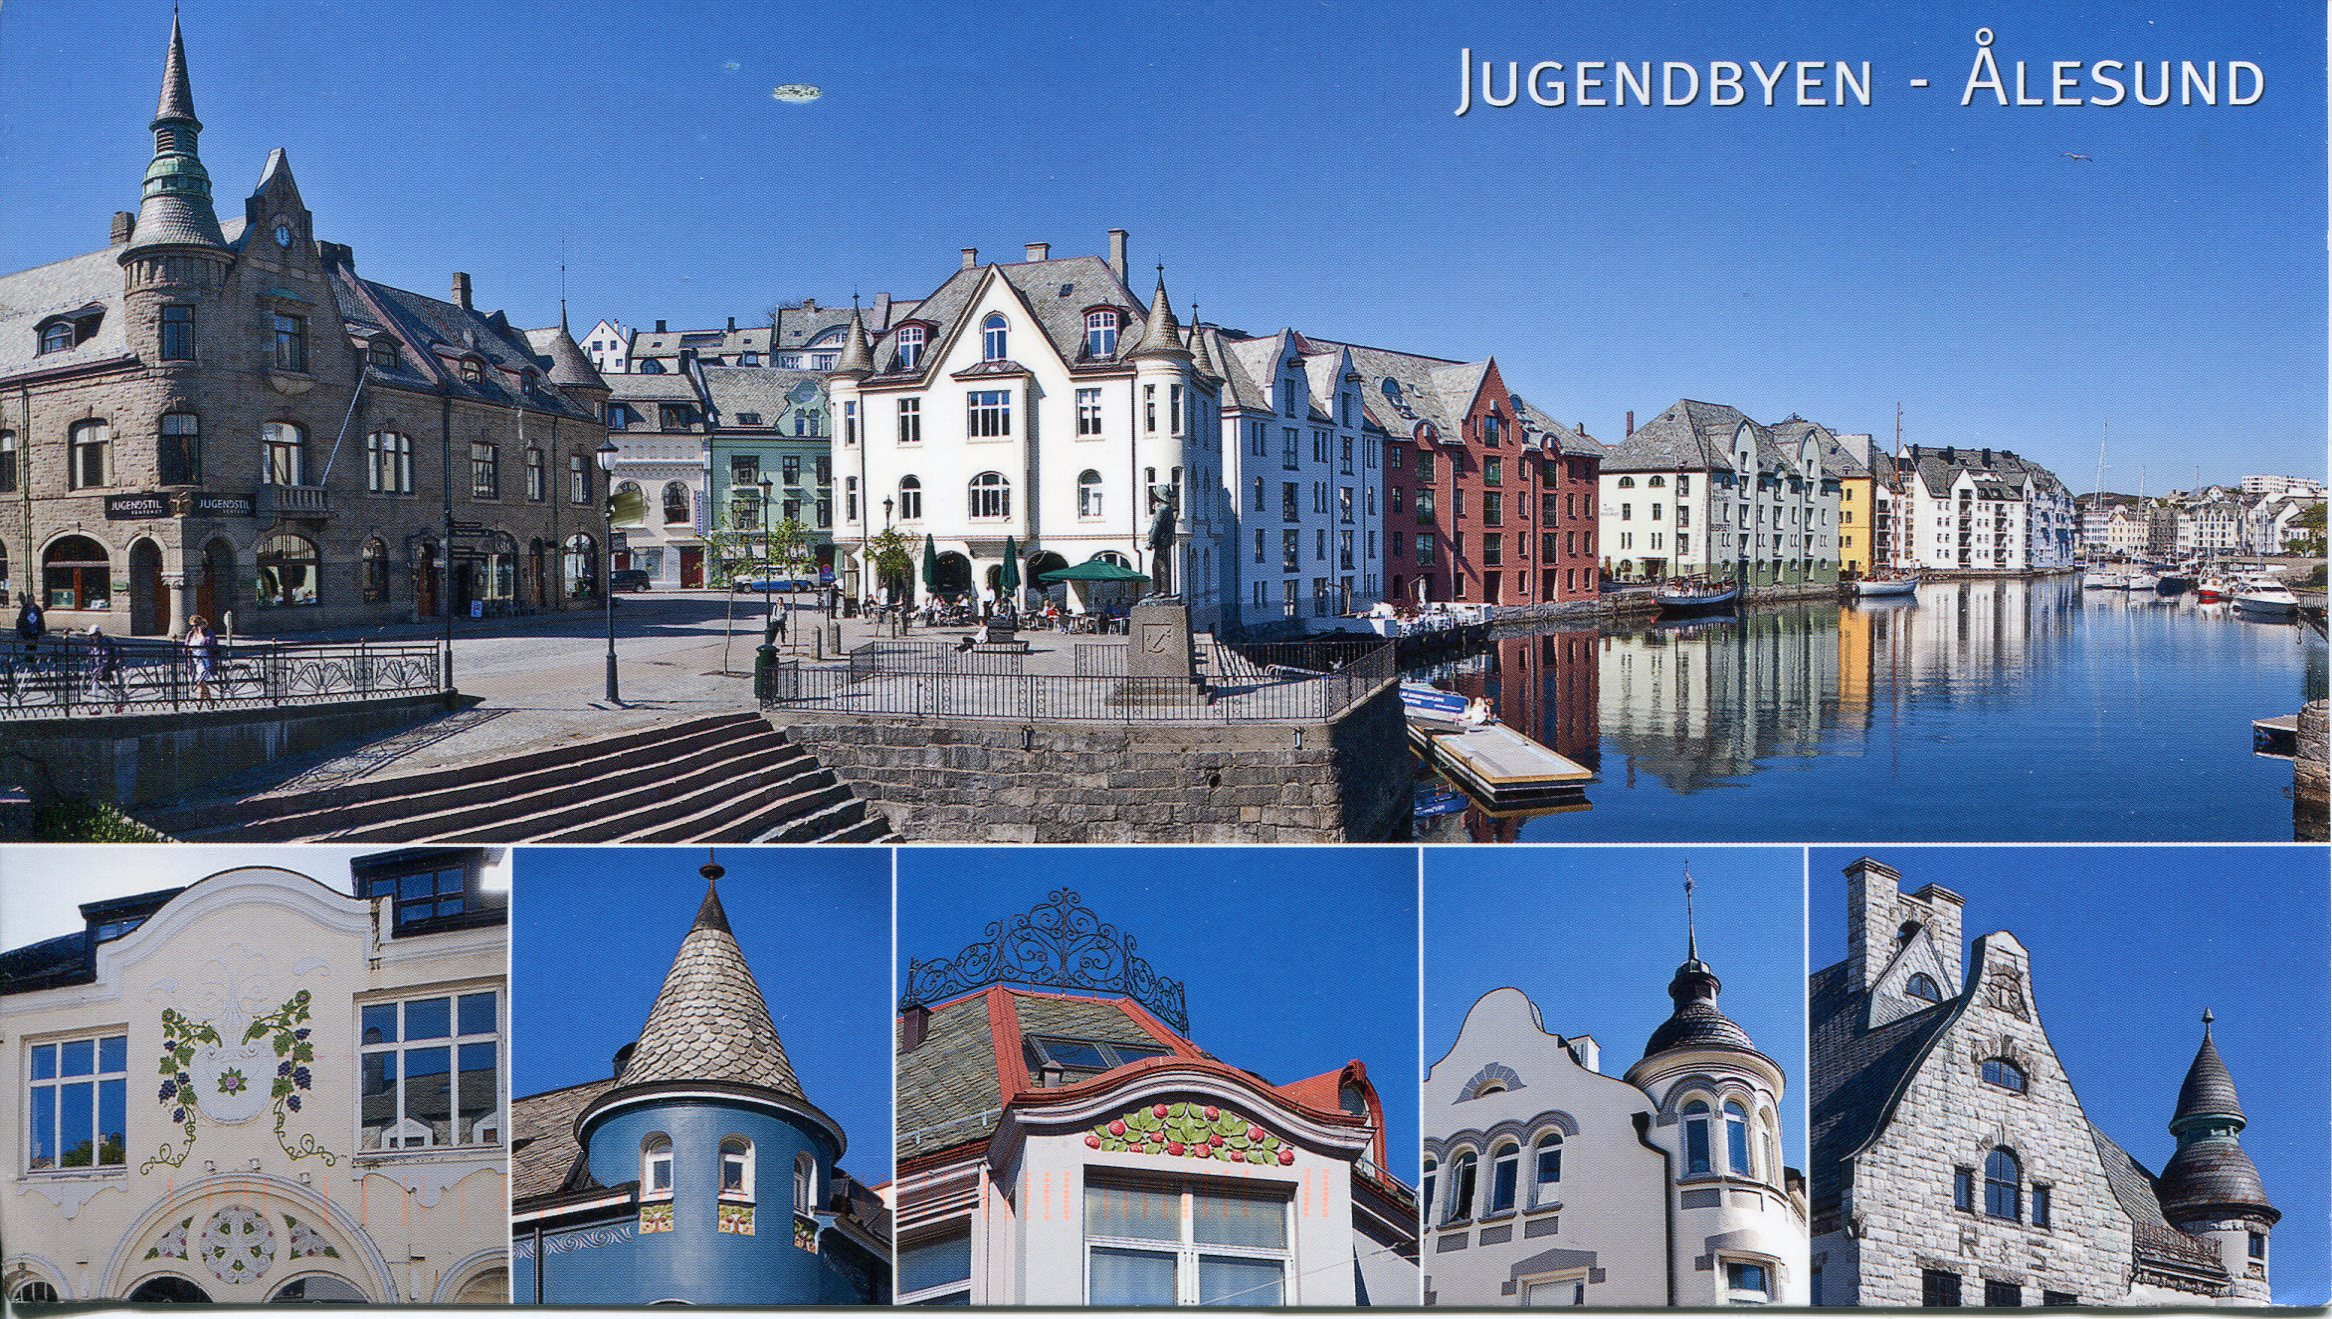 Norway – Jugendbyen Alesund | Remembering Letters and ...